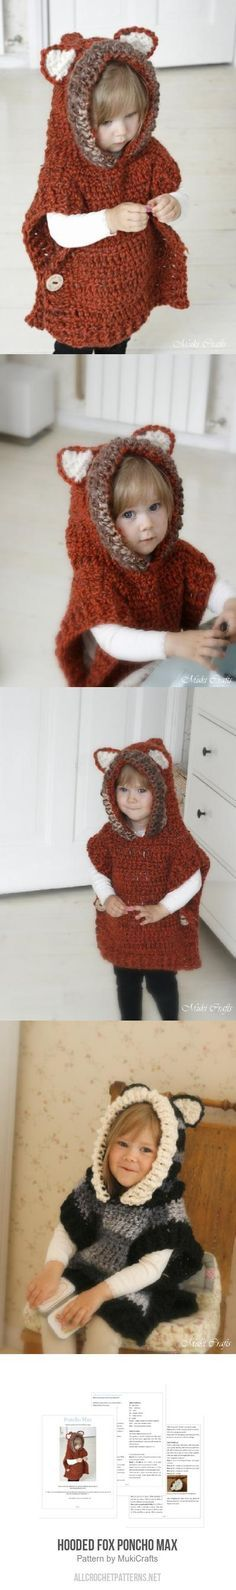 Hooded fox poncho Max crochet pattern